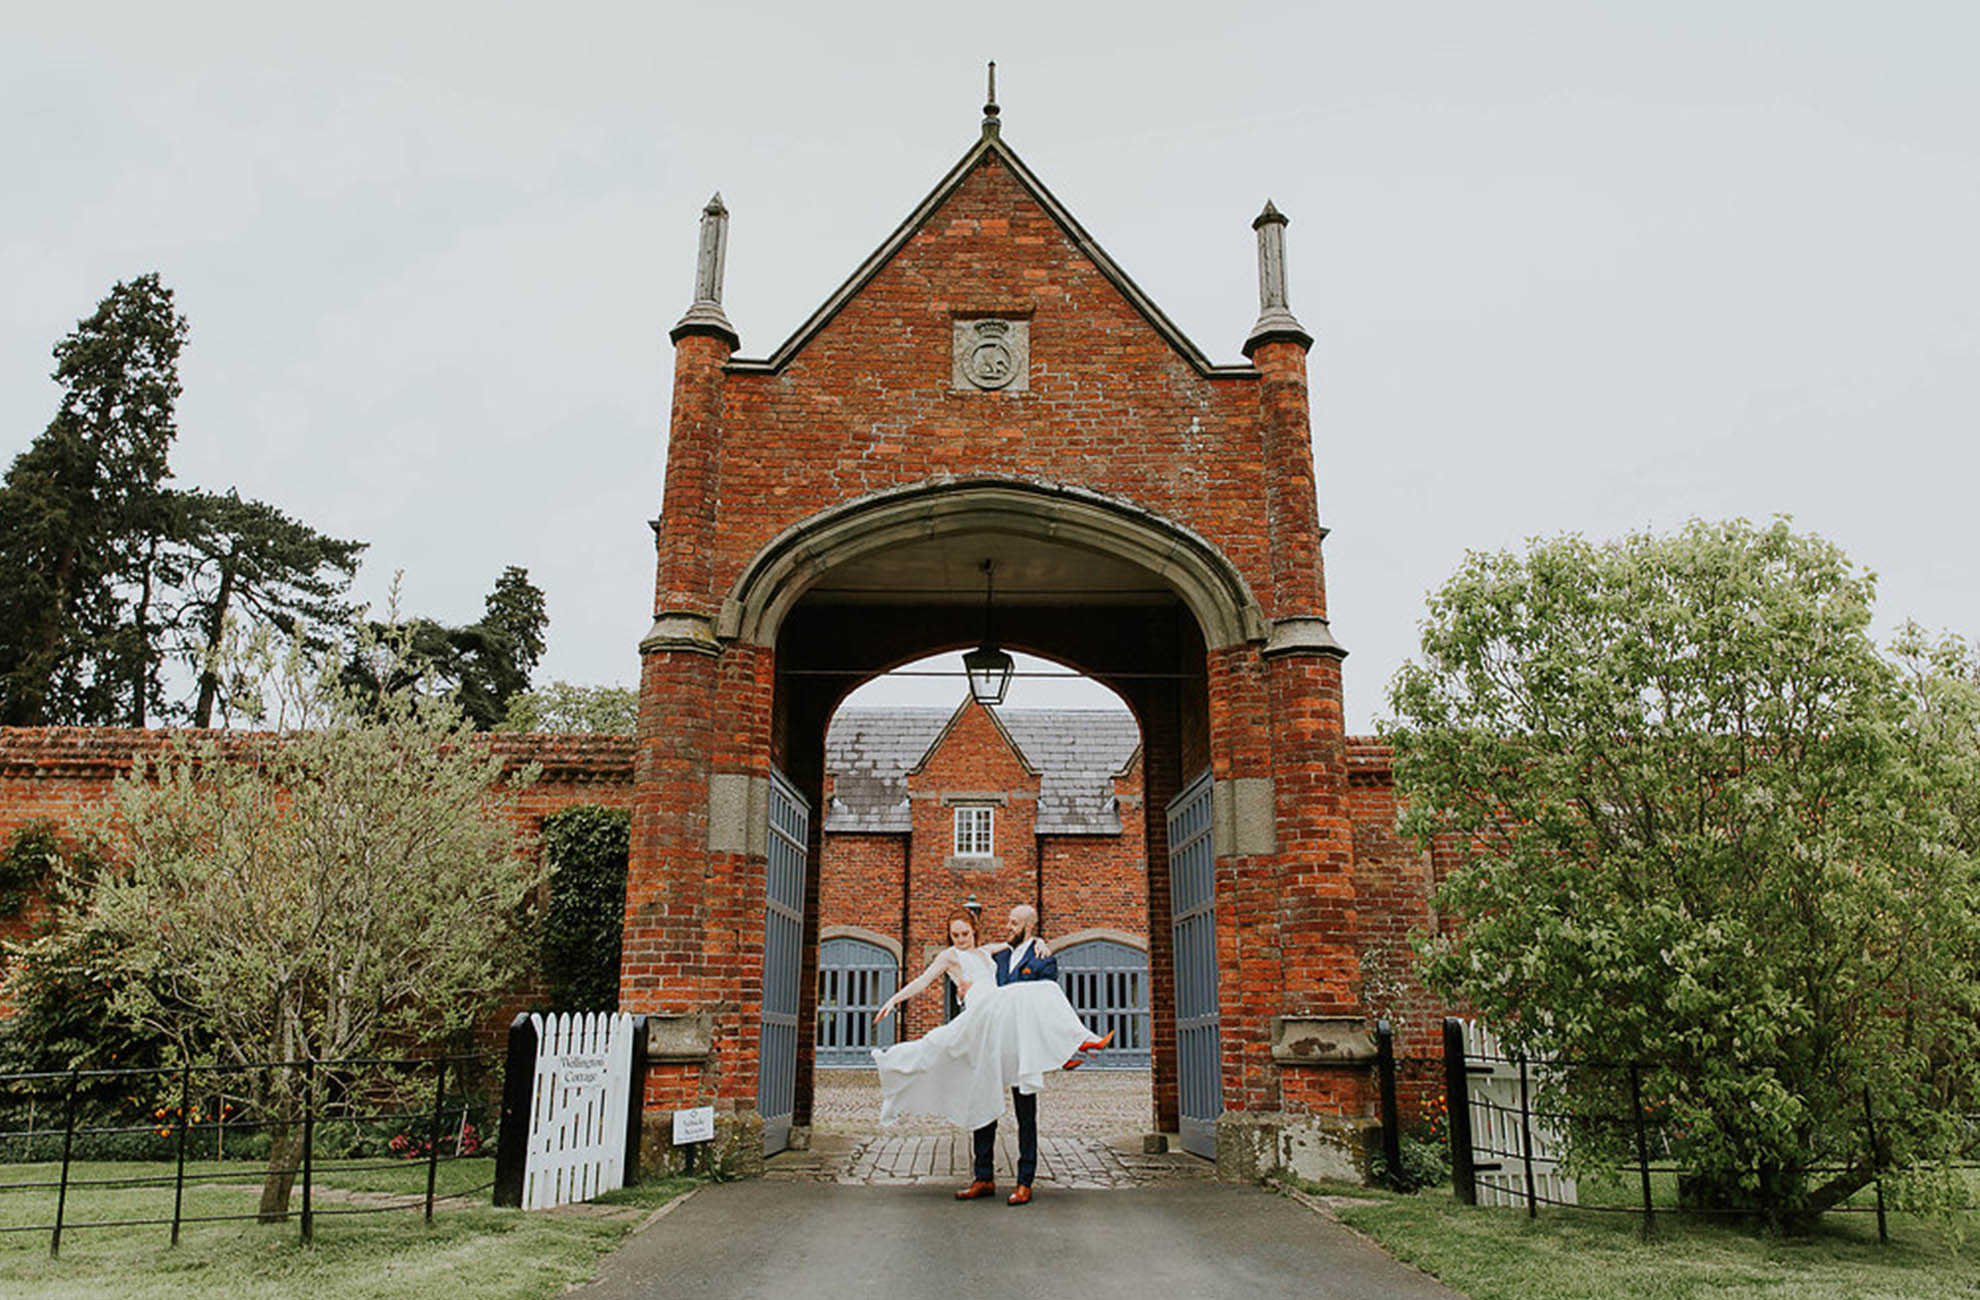 A bride and groom enjoy exploring the grounds at Combermere Abbey on their wedding day